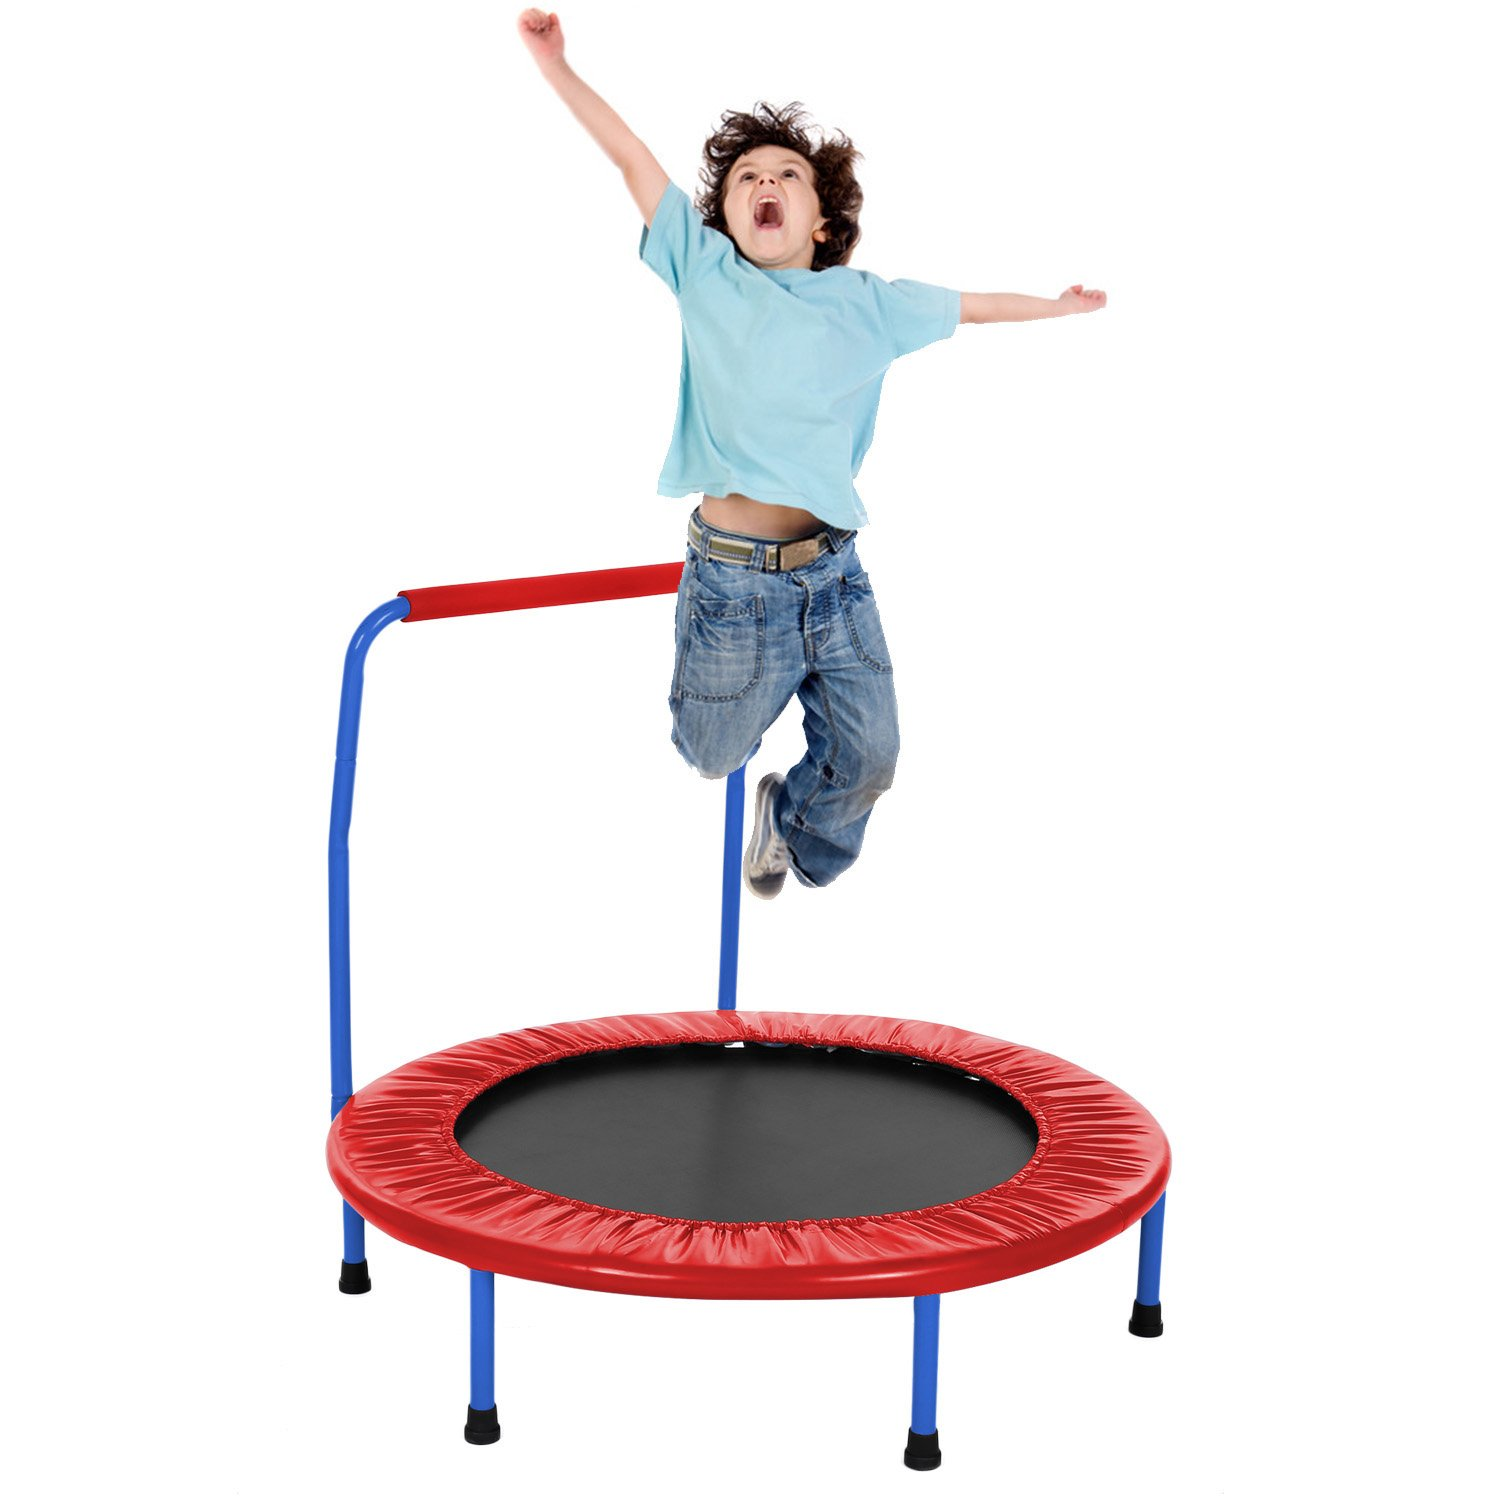 Fioleken Mini Rebounder Trampoline for Kids 36 inch Foldable with Adjustable Handle Indoor/Outdoor Use for Child Age 3+ (Red)